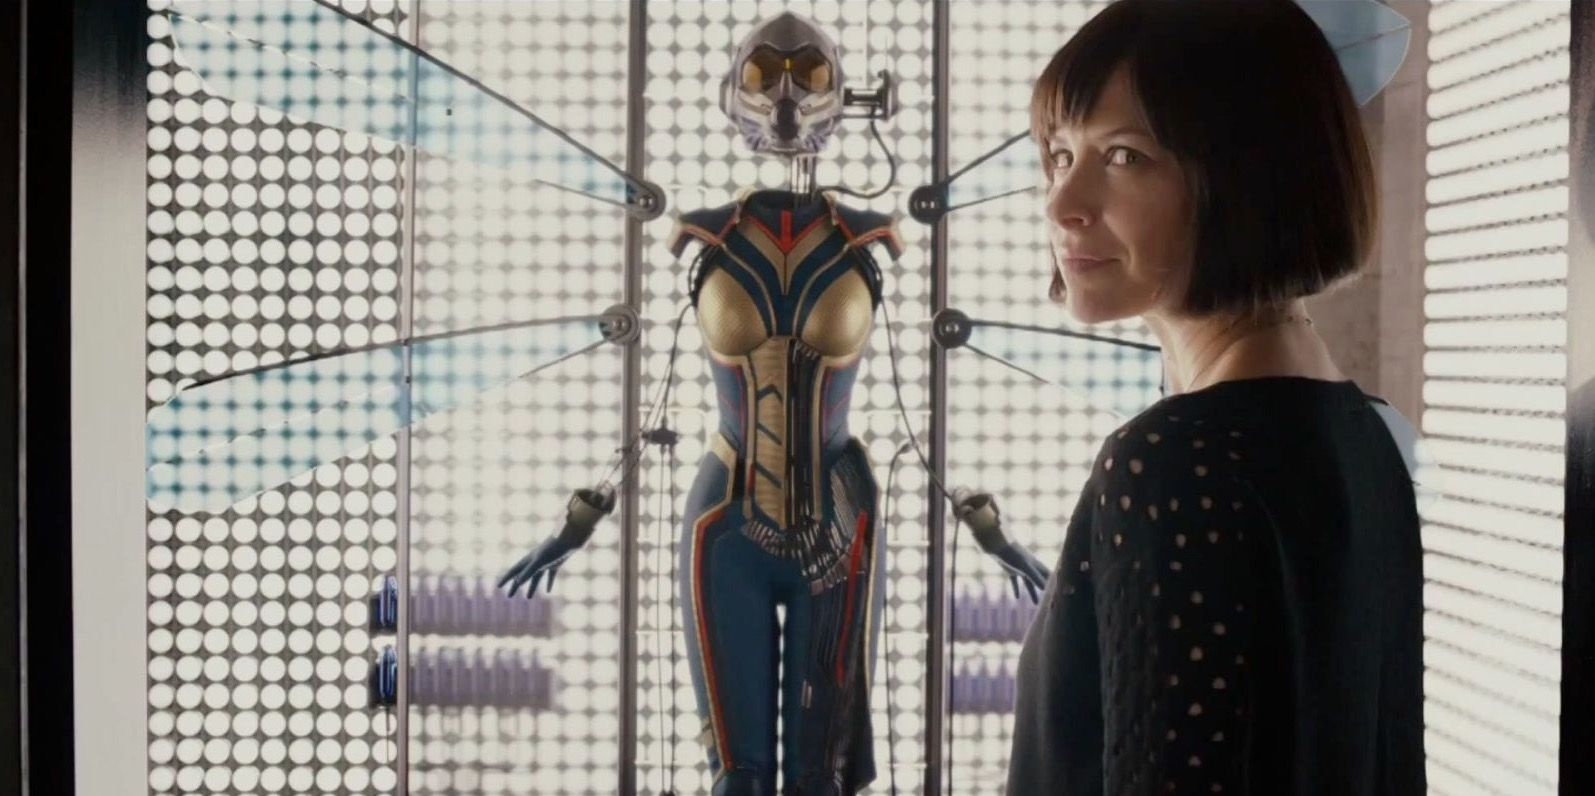 Ant-Man fans shocked by NSFW Wasp costume pattern